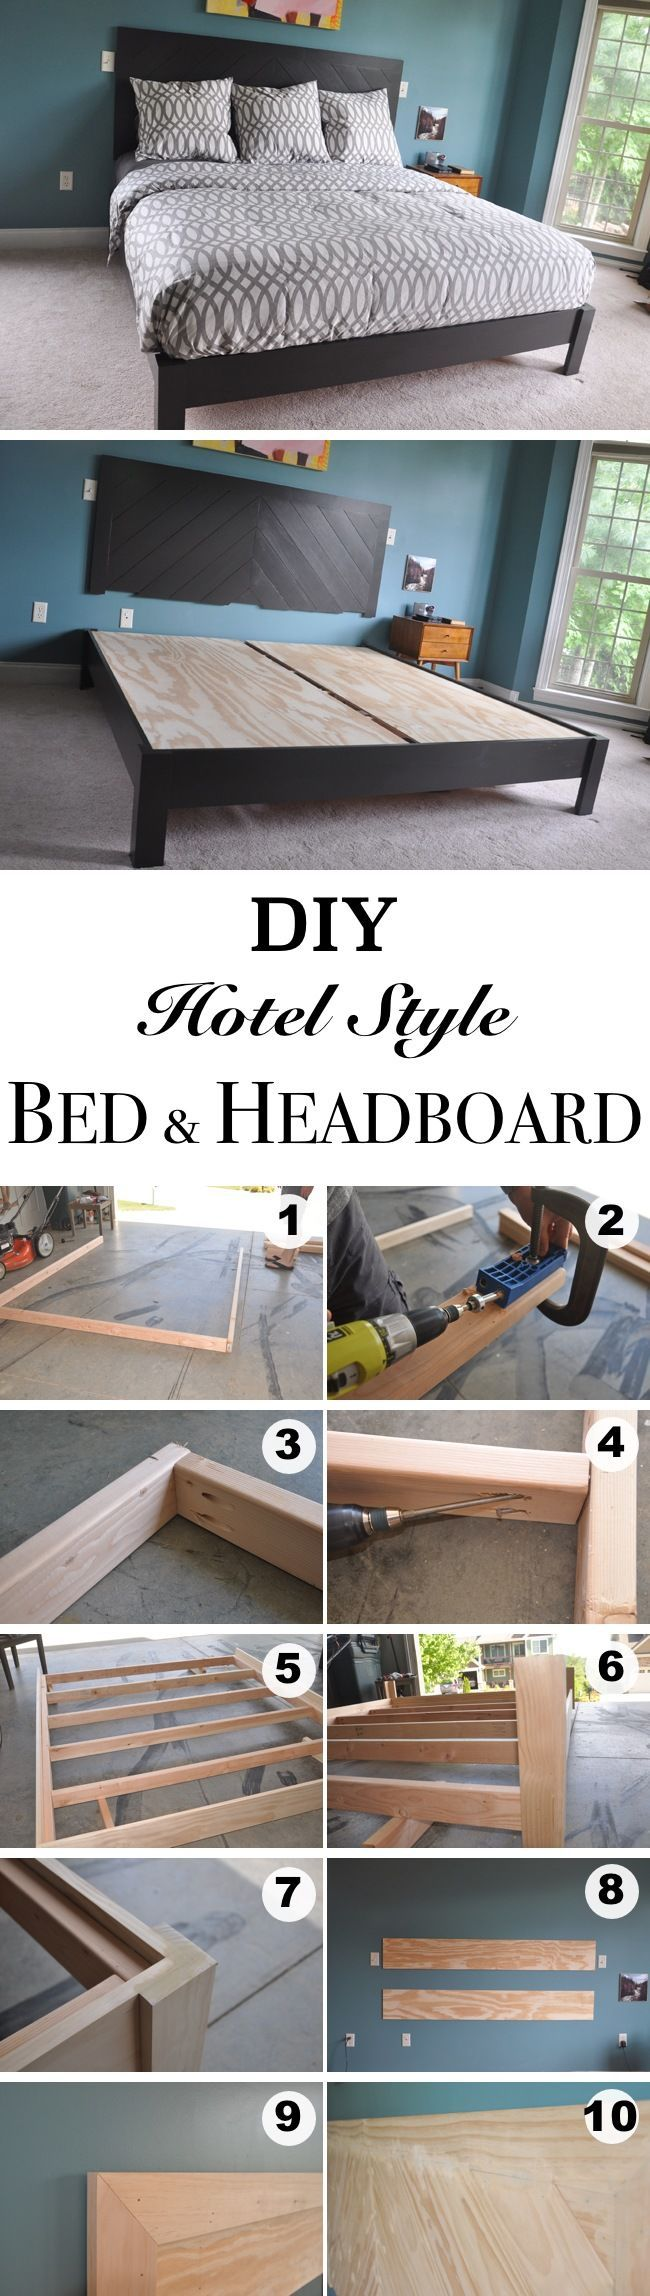 36 Easy DIY Bed Frame Projects to Upgrade Your Bedroom | Homelovr